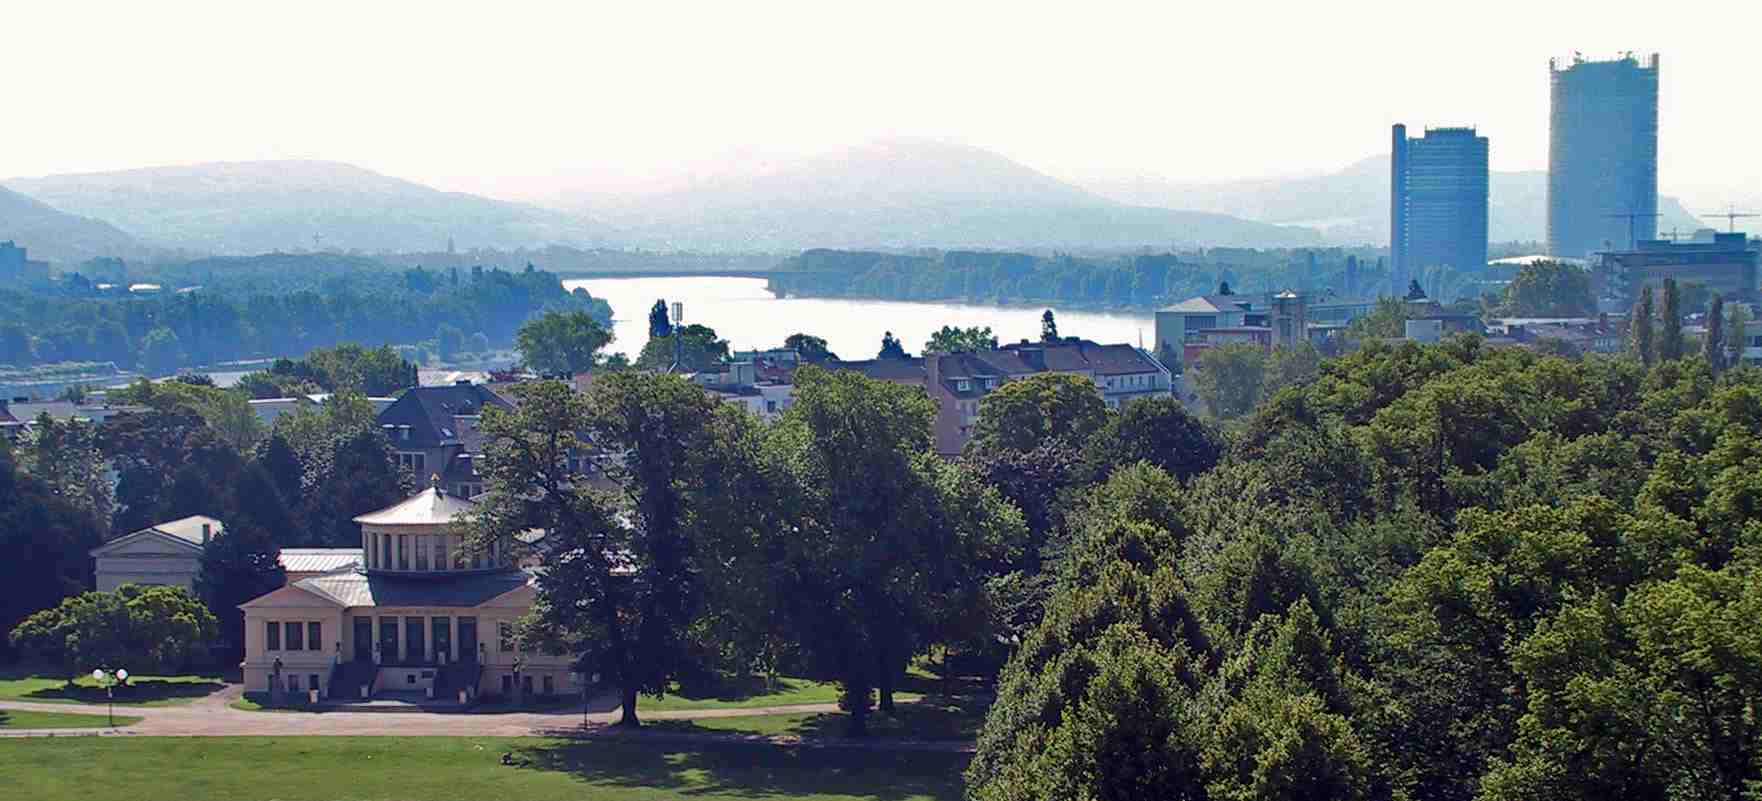 View of Bonn, Copyright: Dr. Thomas Mauersberg / University Bonn